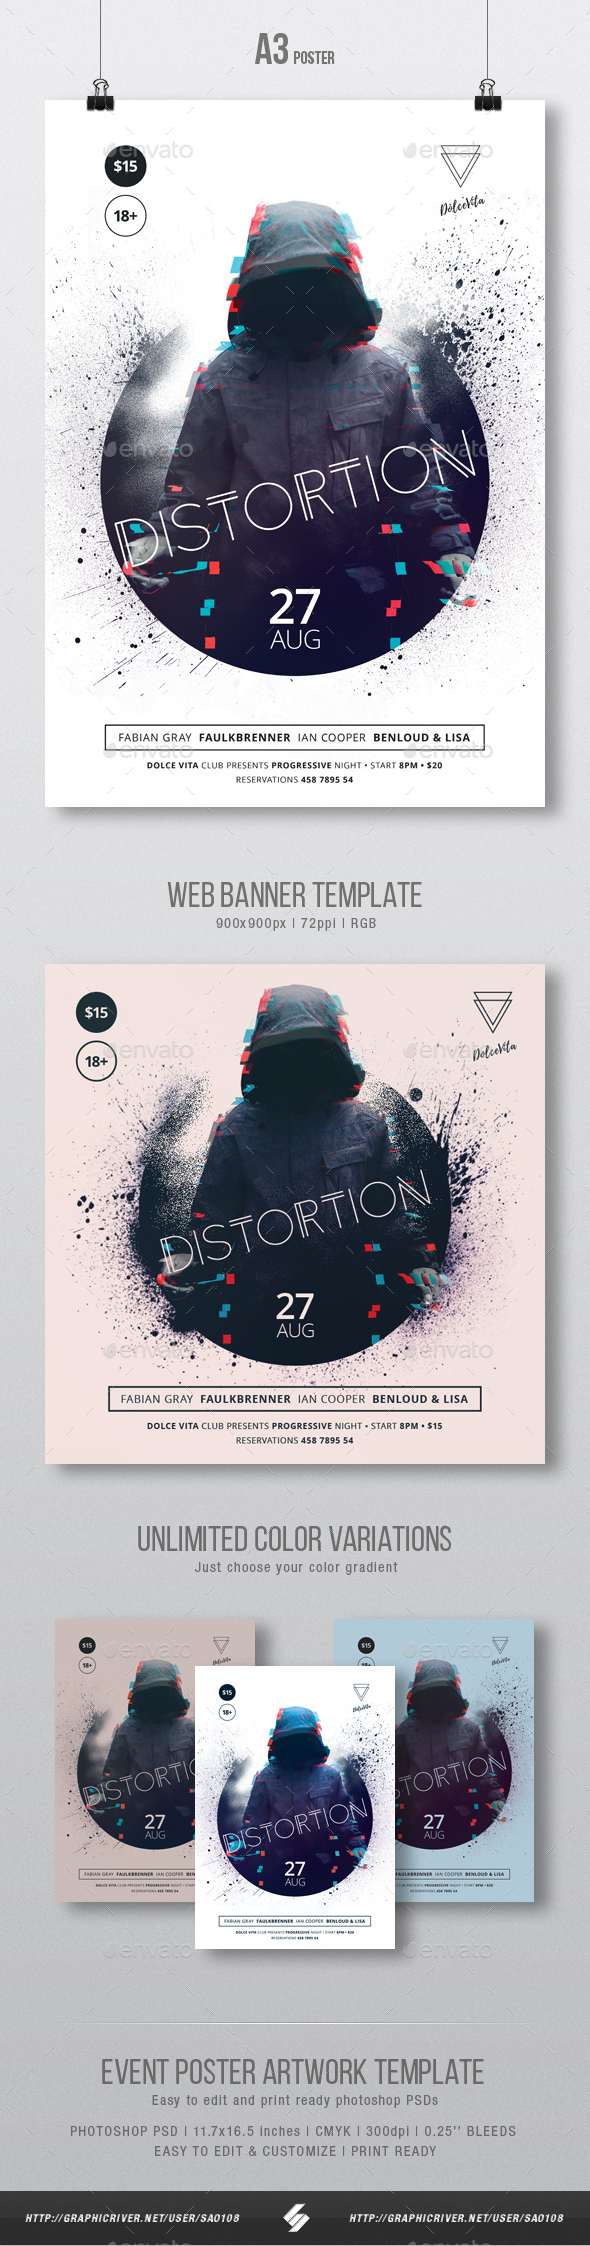 Distortion - Underground Party Flyer / Poster Template A3 - Clubs & Parties Events